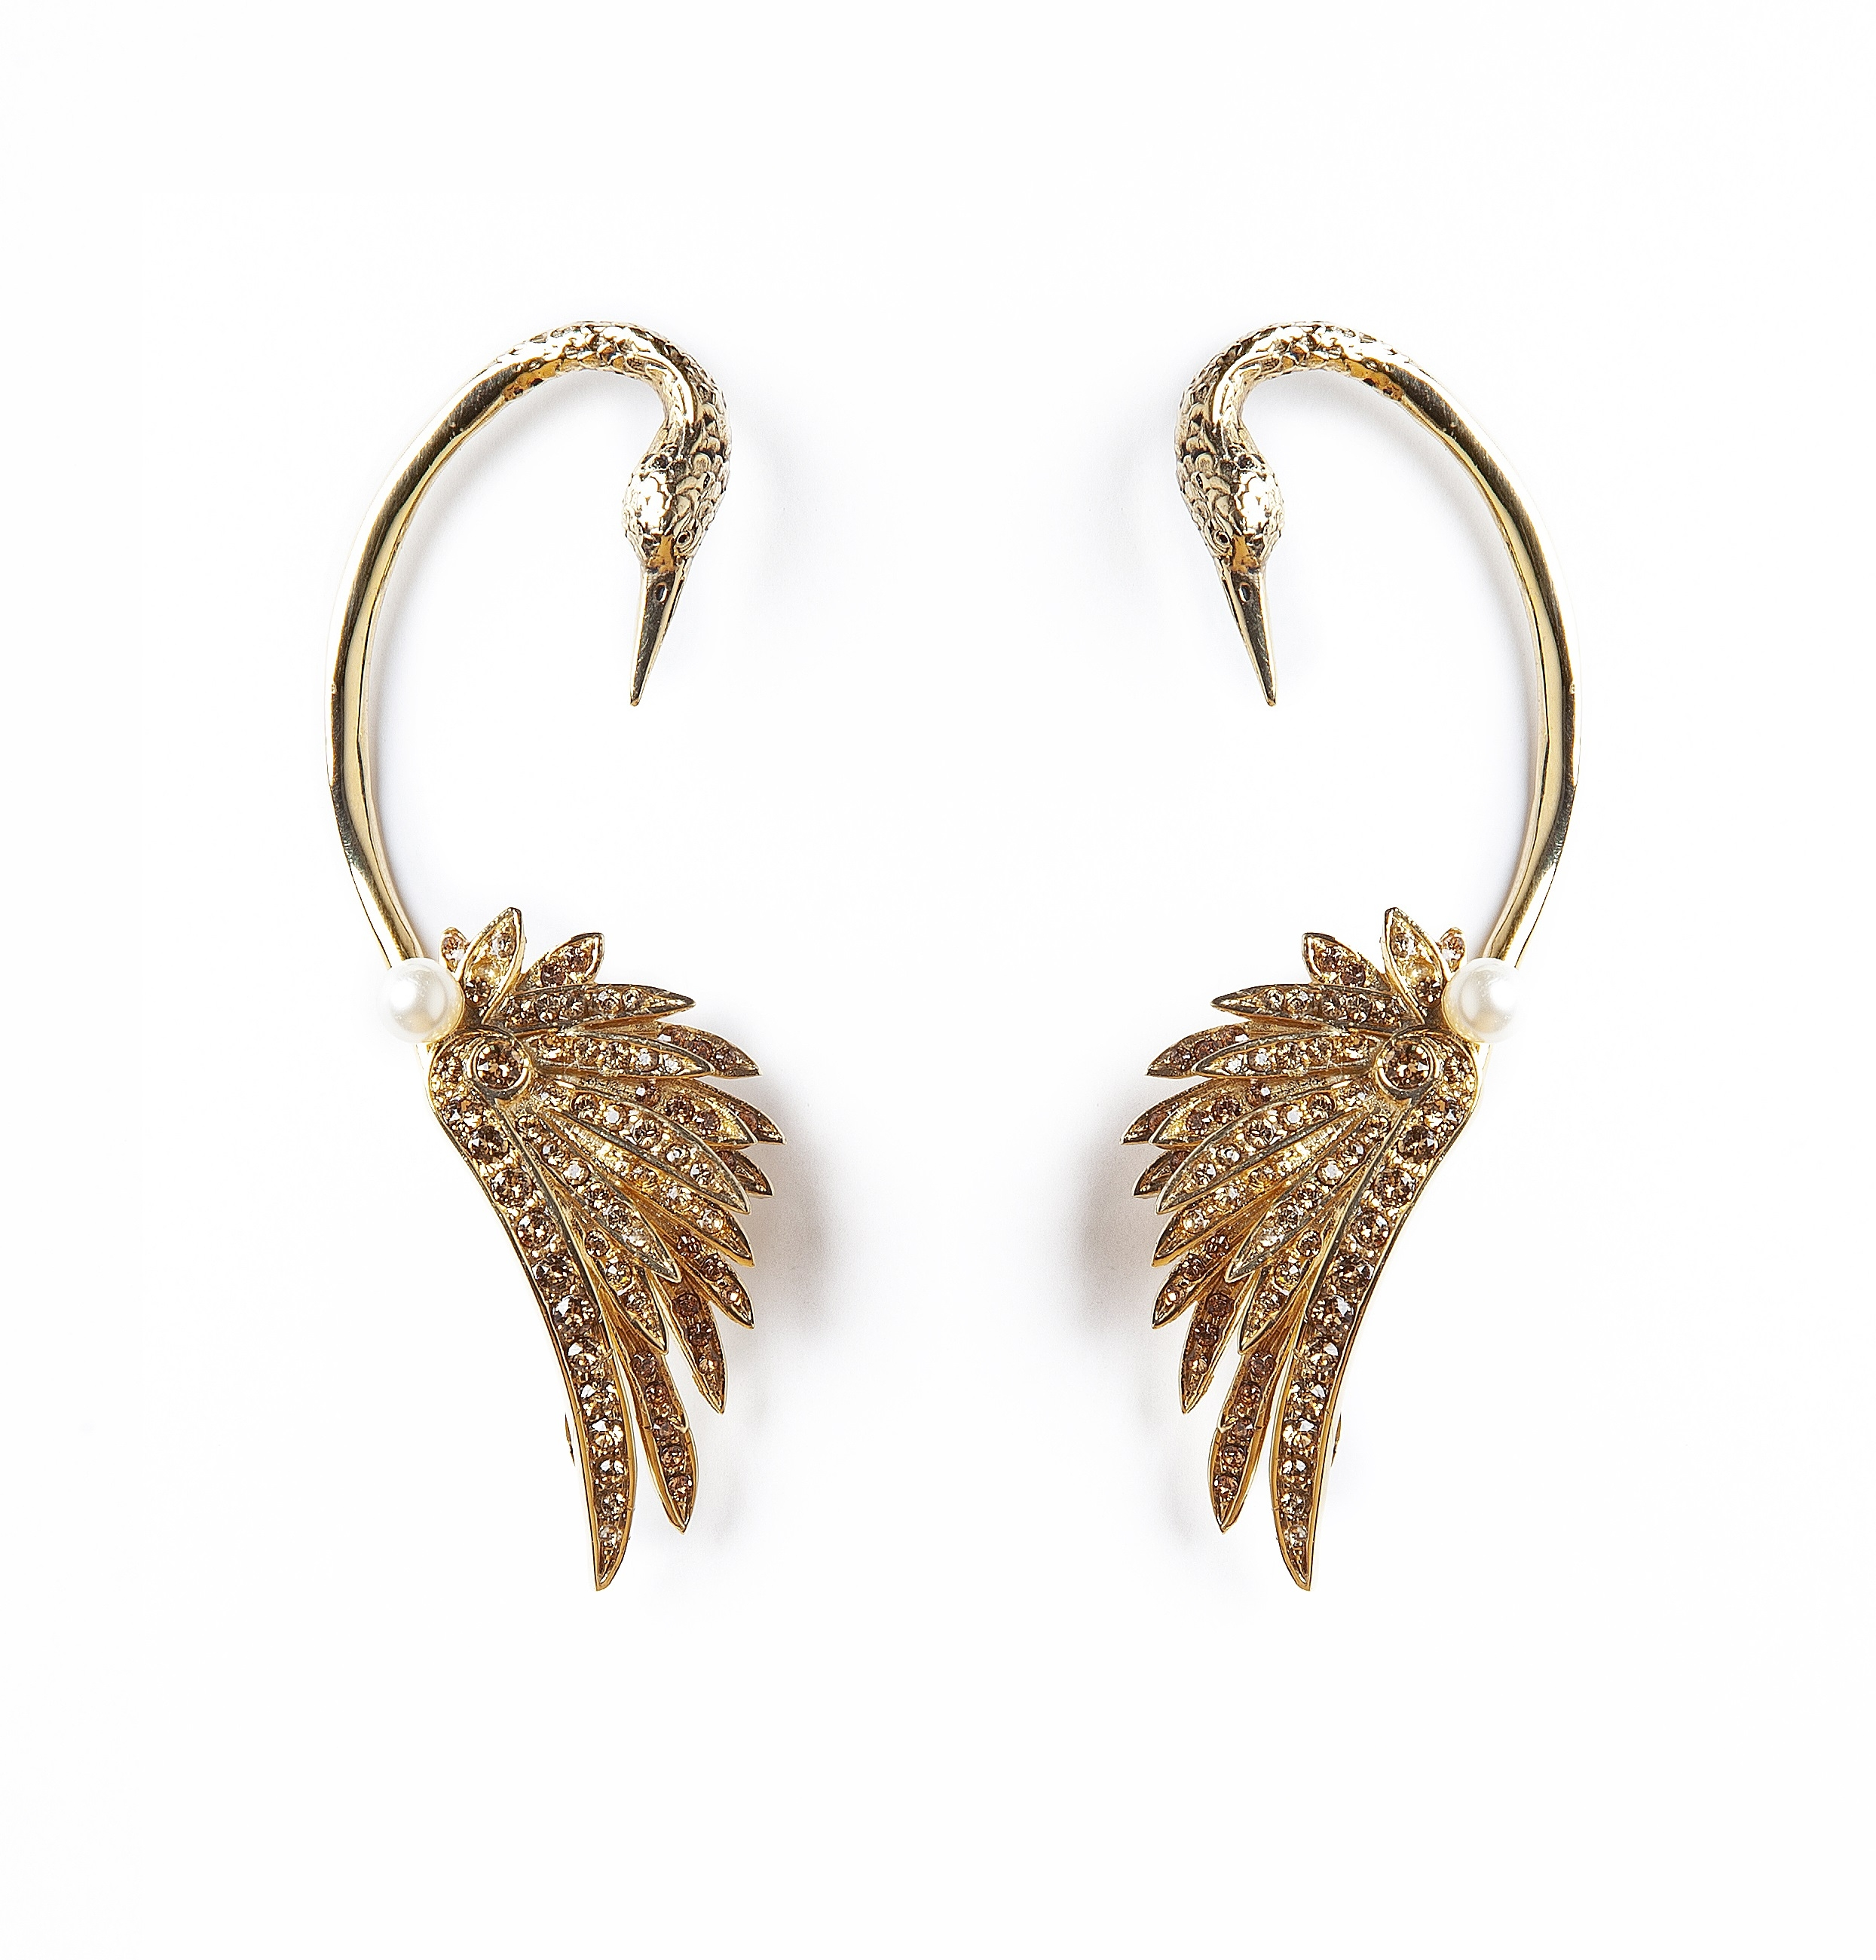 Gold Swan Luxury Earrings by Sonia Petroff on curated-crowd.com